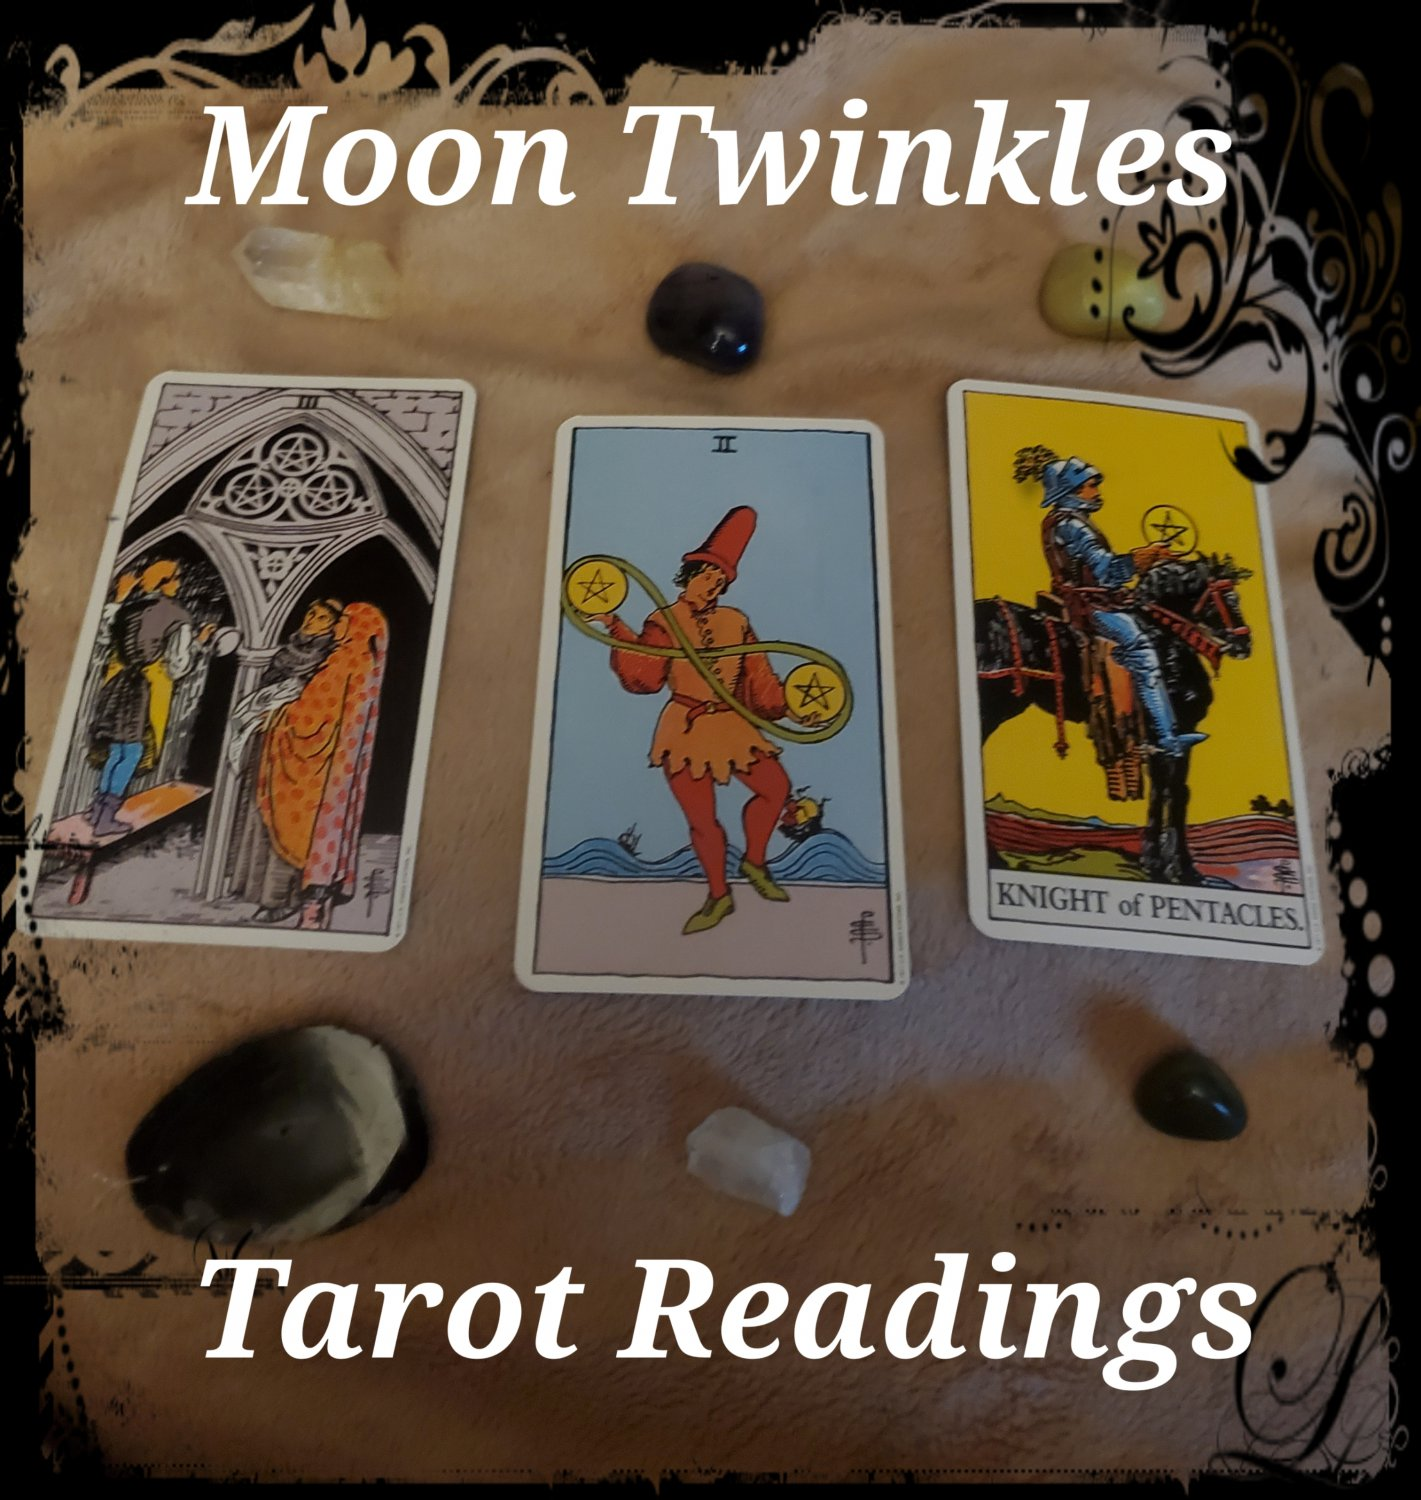 How do i get along with others?  Tarot Reading